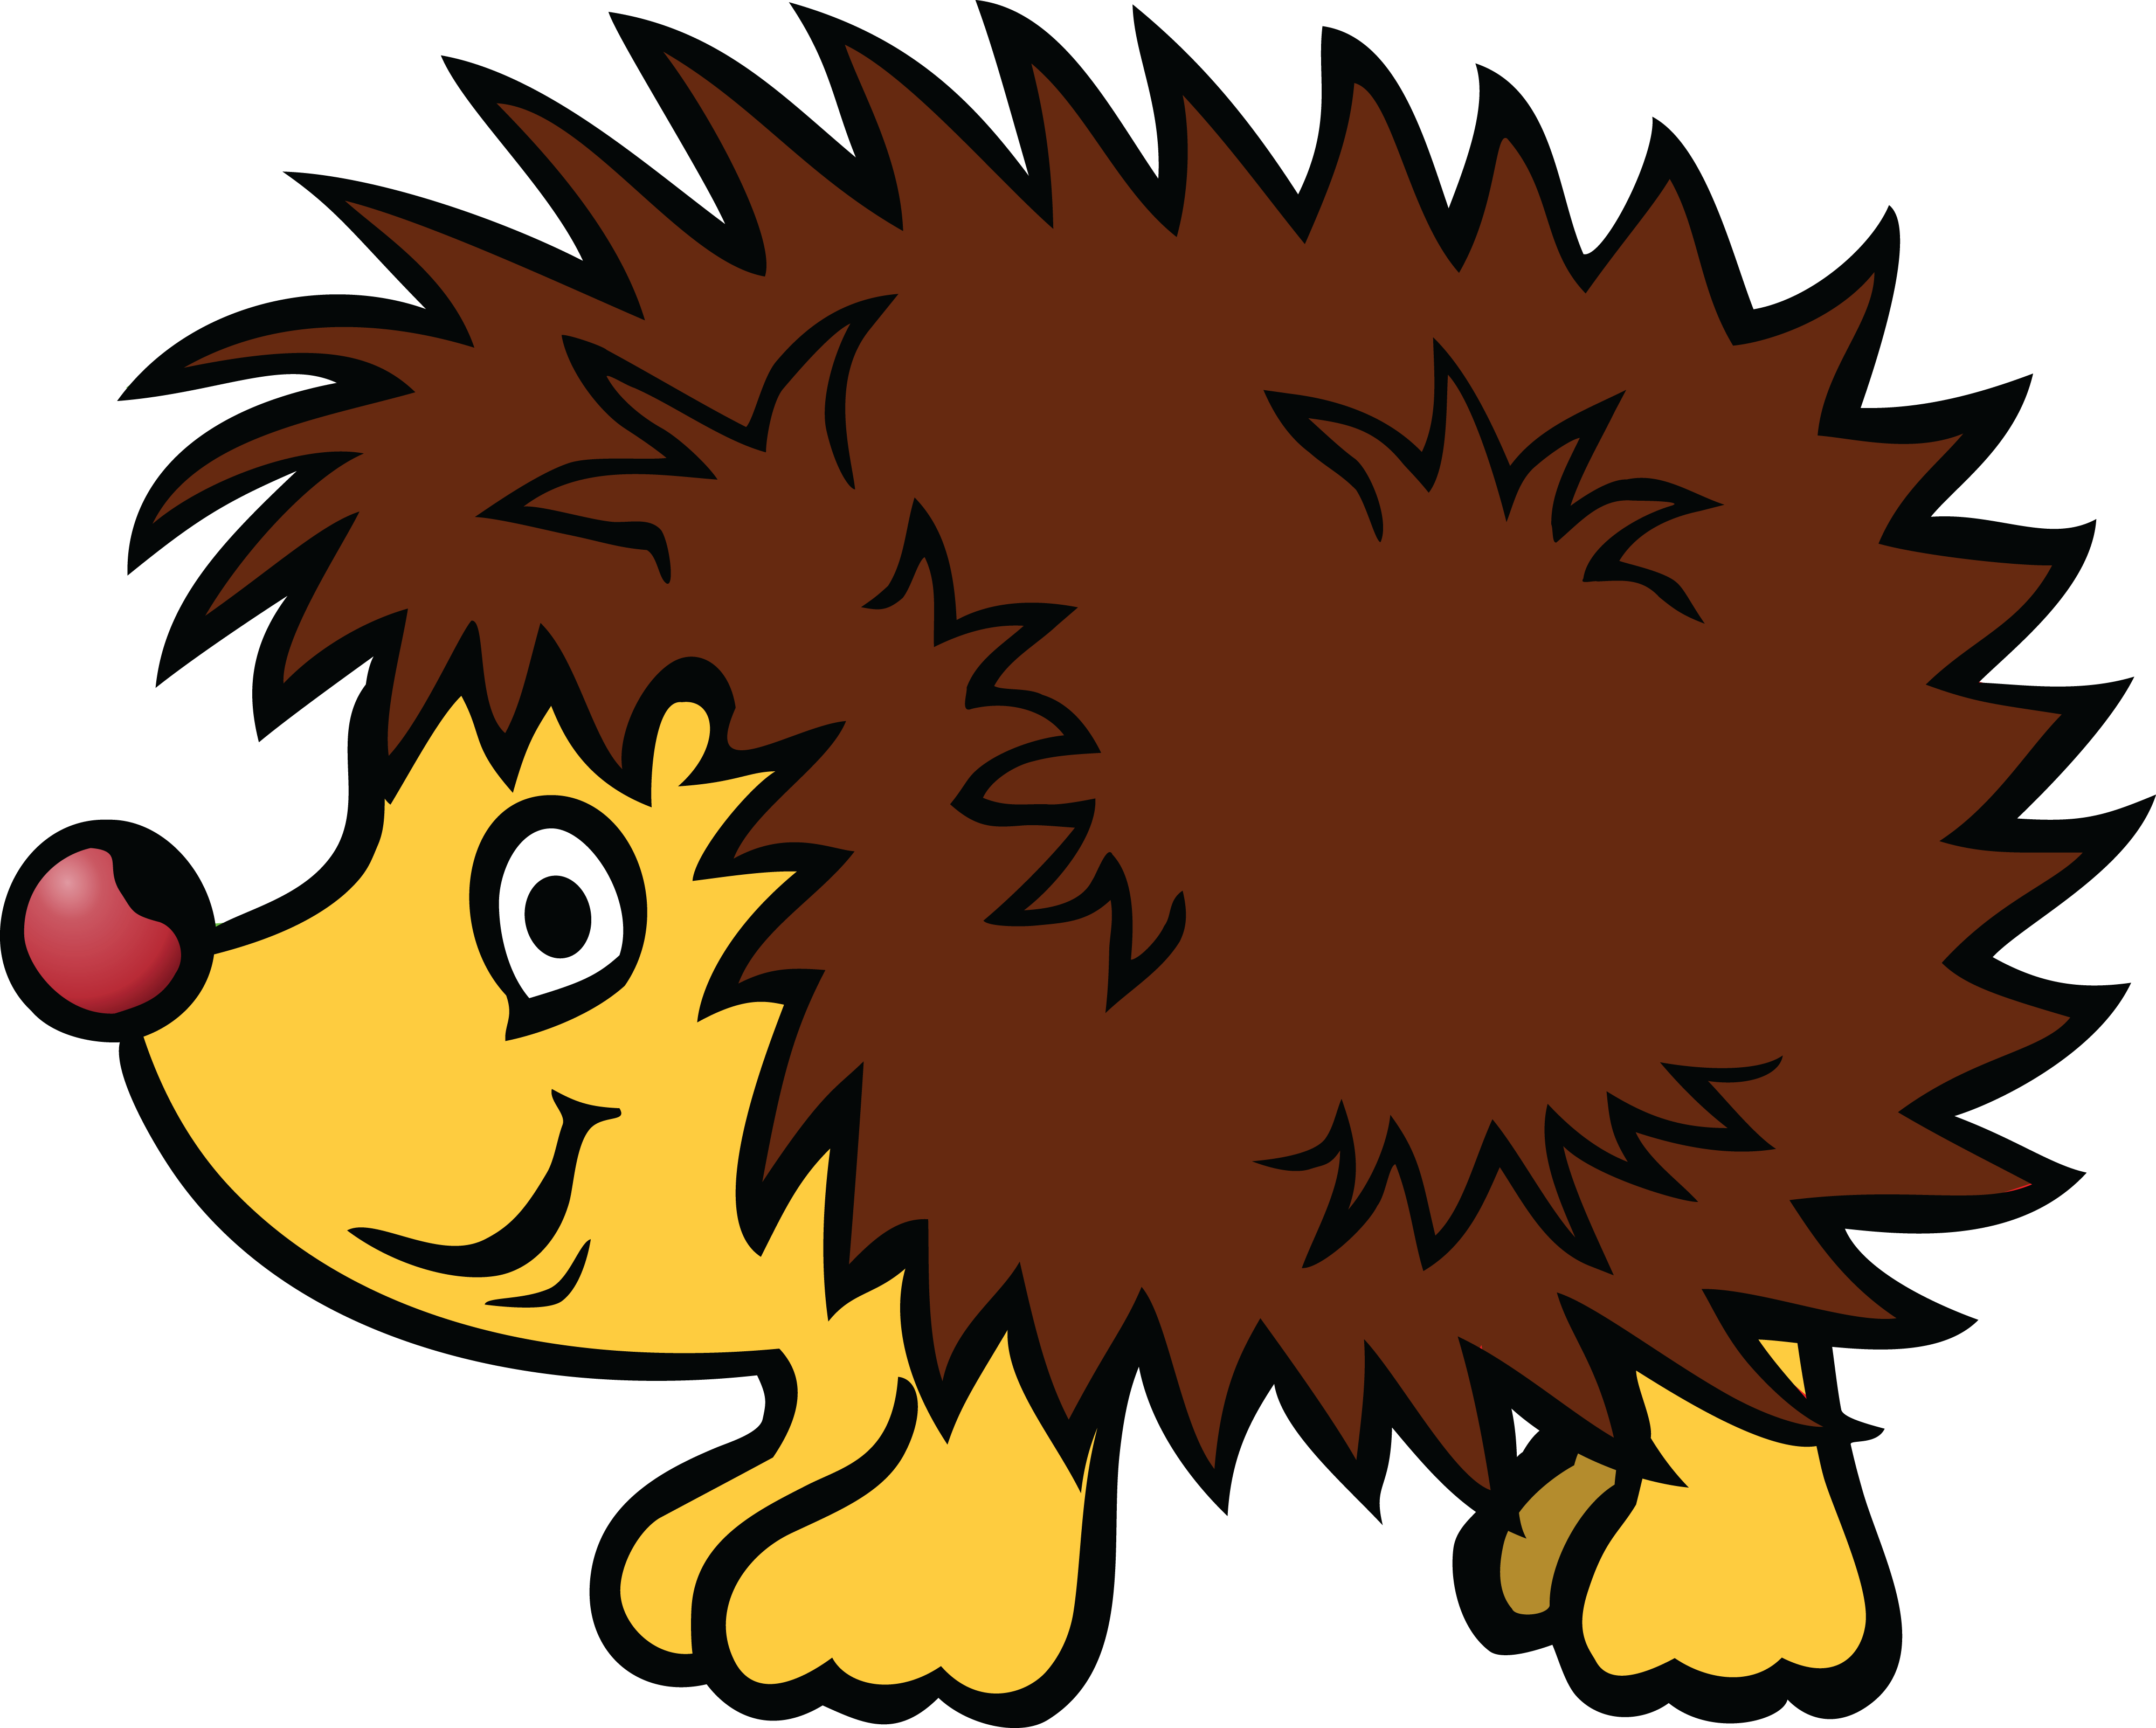 Hedgehog clipart hedgehog face.  collection of png